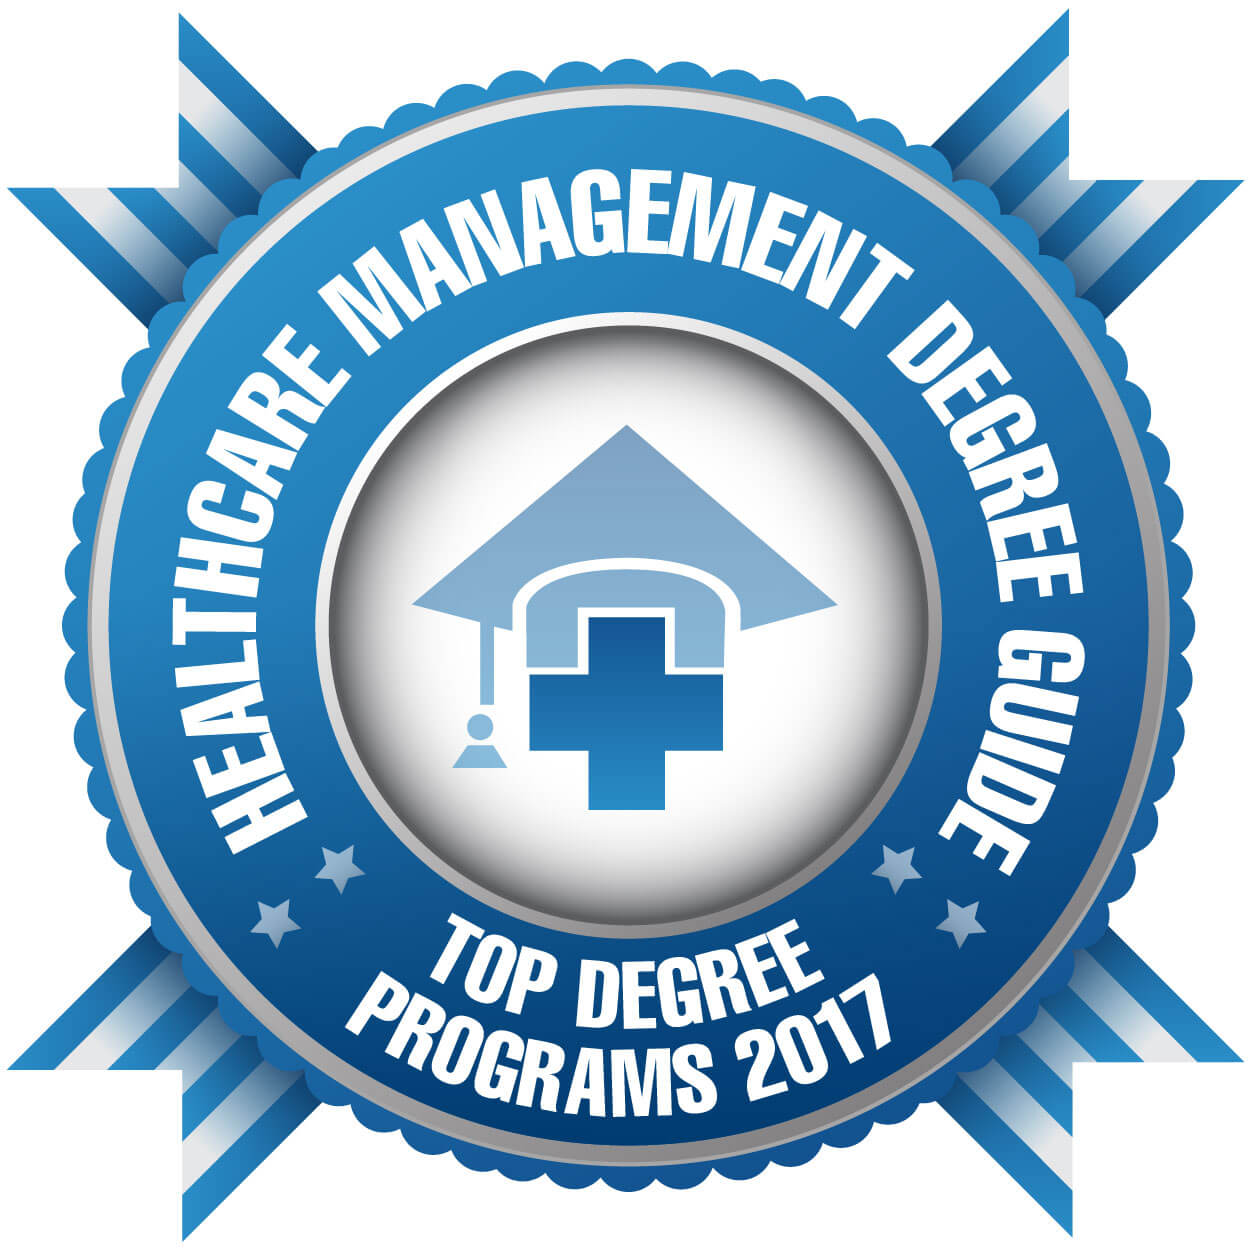 Top 25 health information management degree programs 2017 2018 click here for high resolution badge 1betcityfo Images